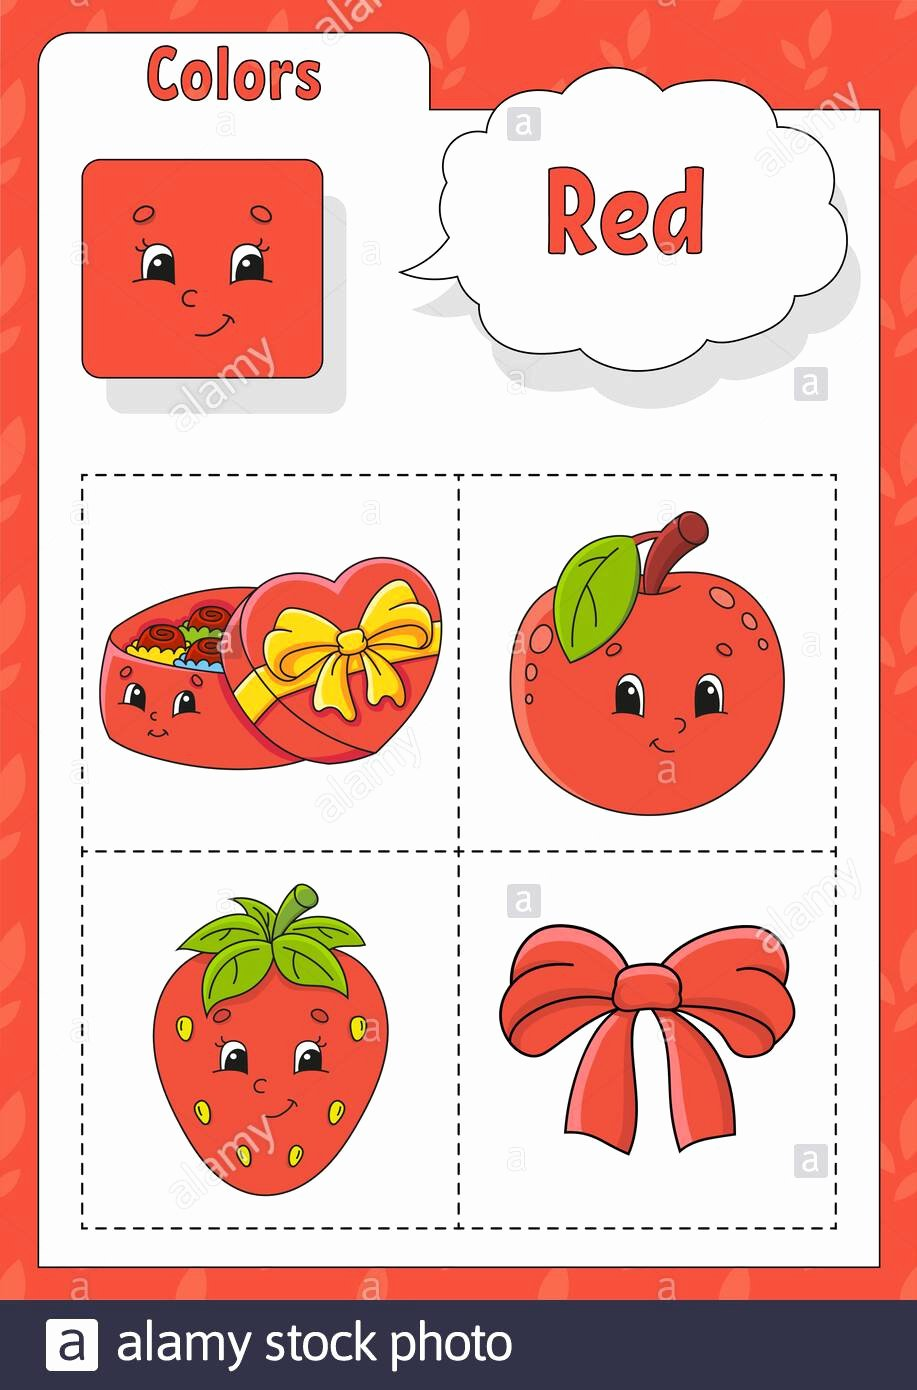 Color Red Worksheets for Preschoolers Fresh Learning Colors Red Color Flashcard for Kids Cute Cartoon